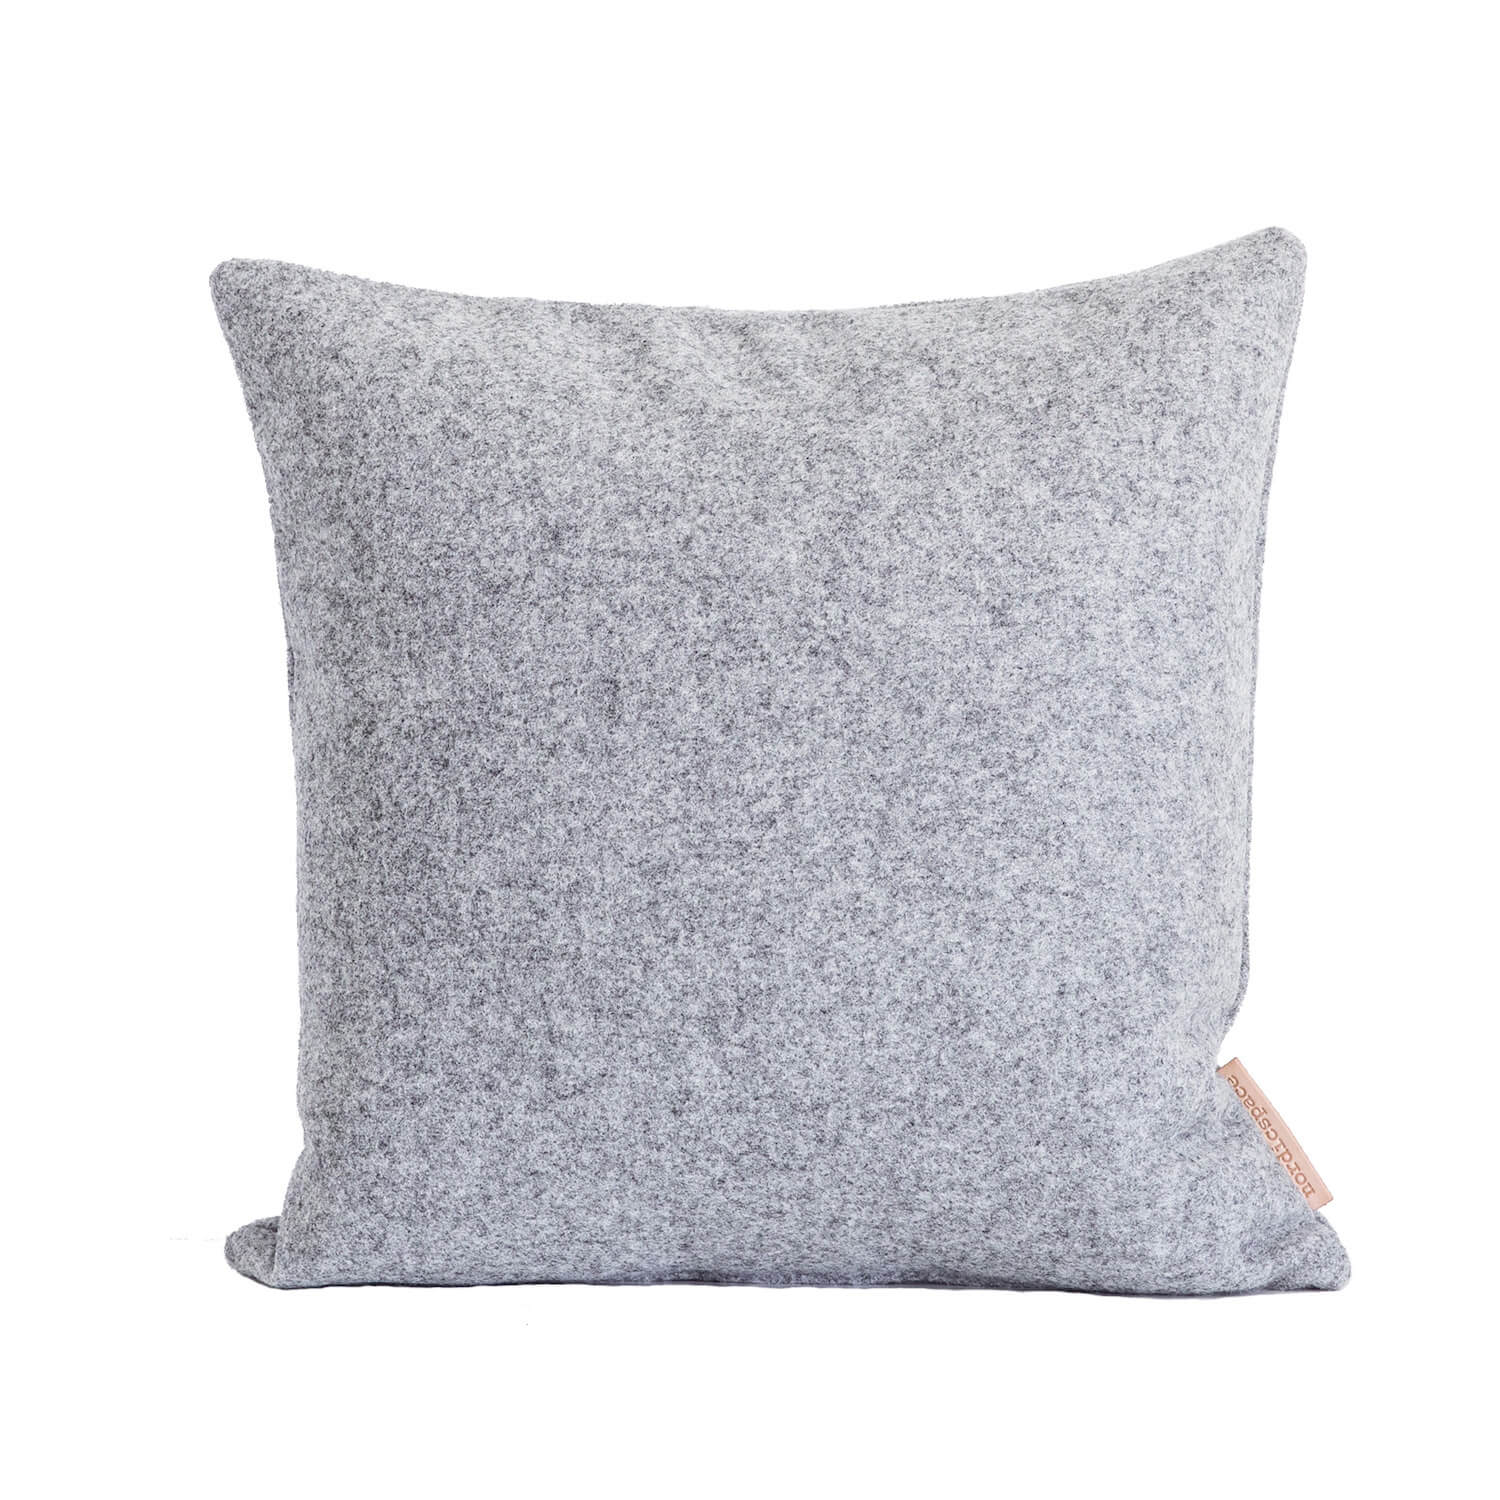 Nordicspace pillow | Winter Wool & Felt